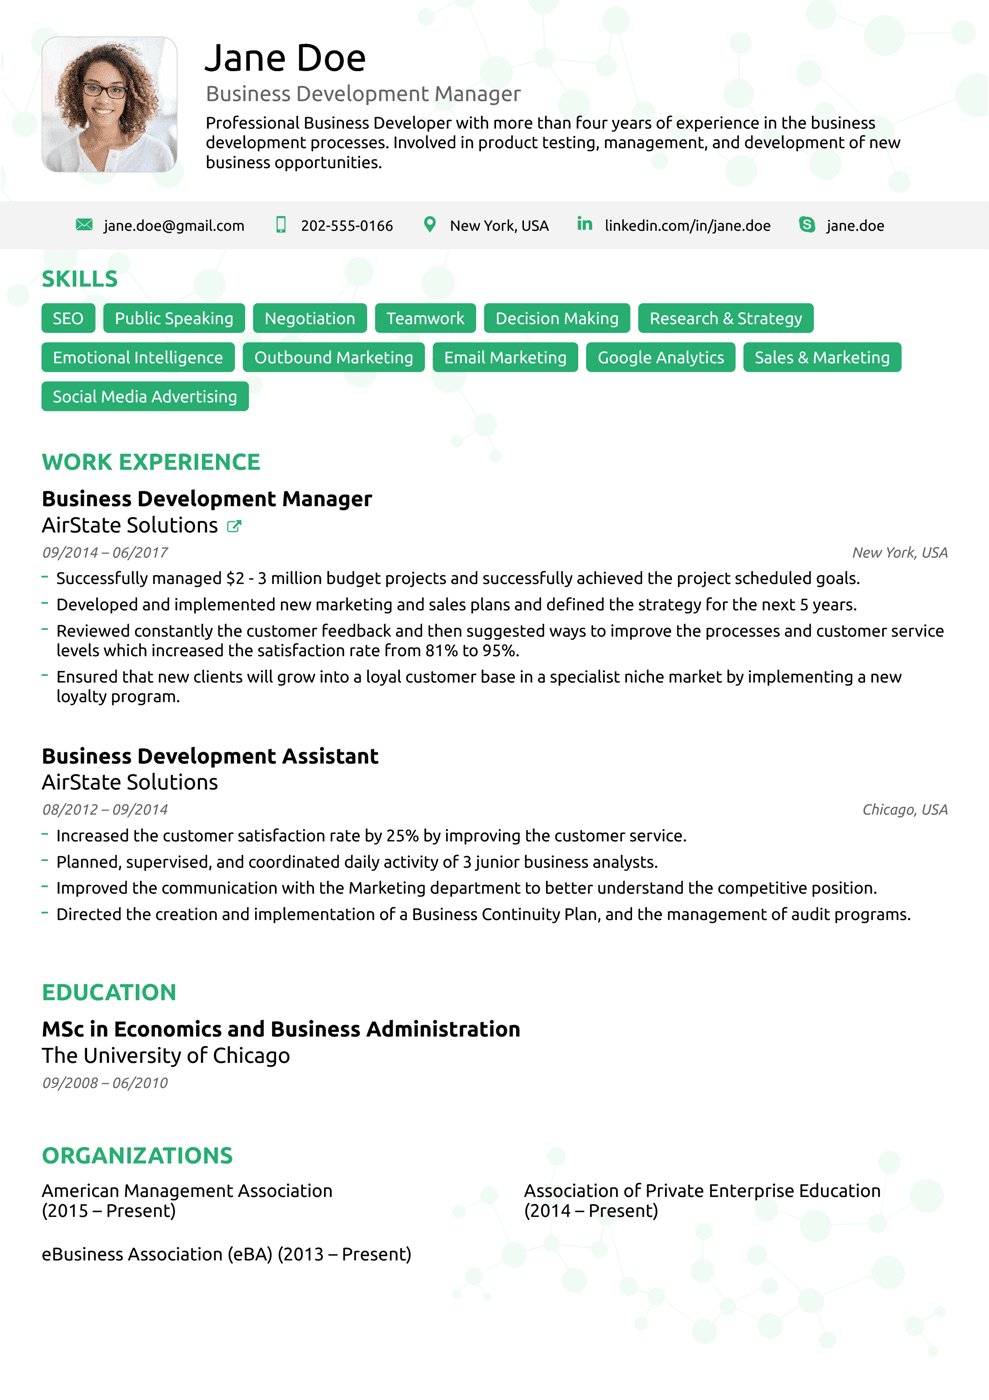 What Is Resume Cv | 8 Best Online Resume Templates Of 2019 Download Customize